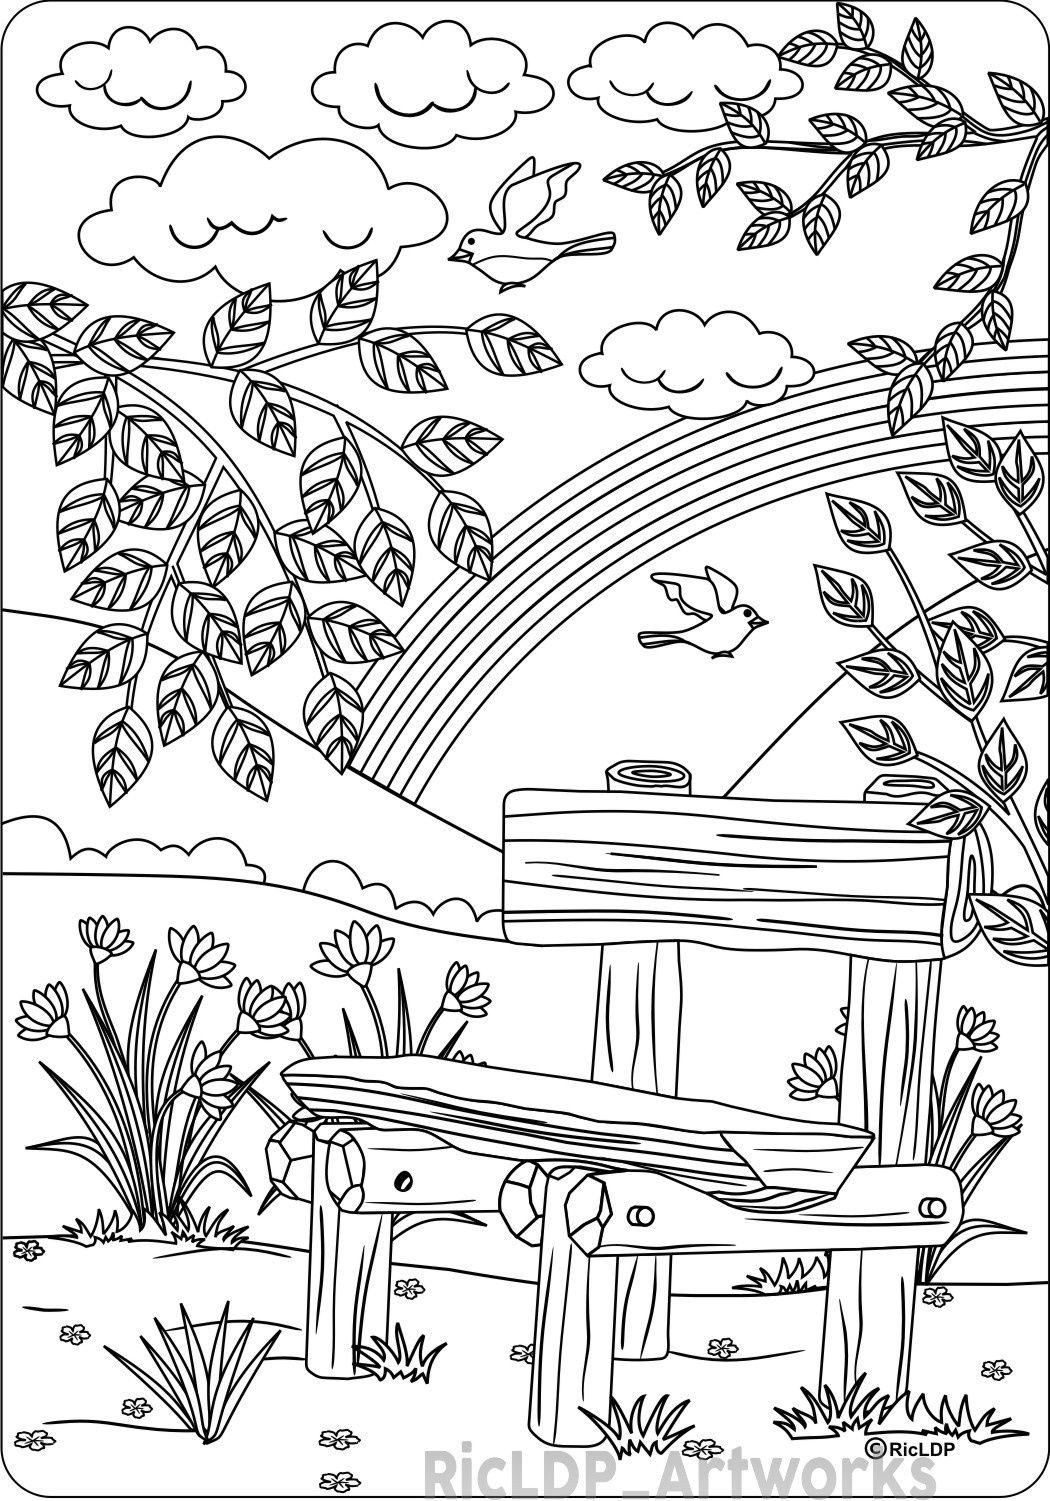 the park bench coloring page for adults